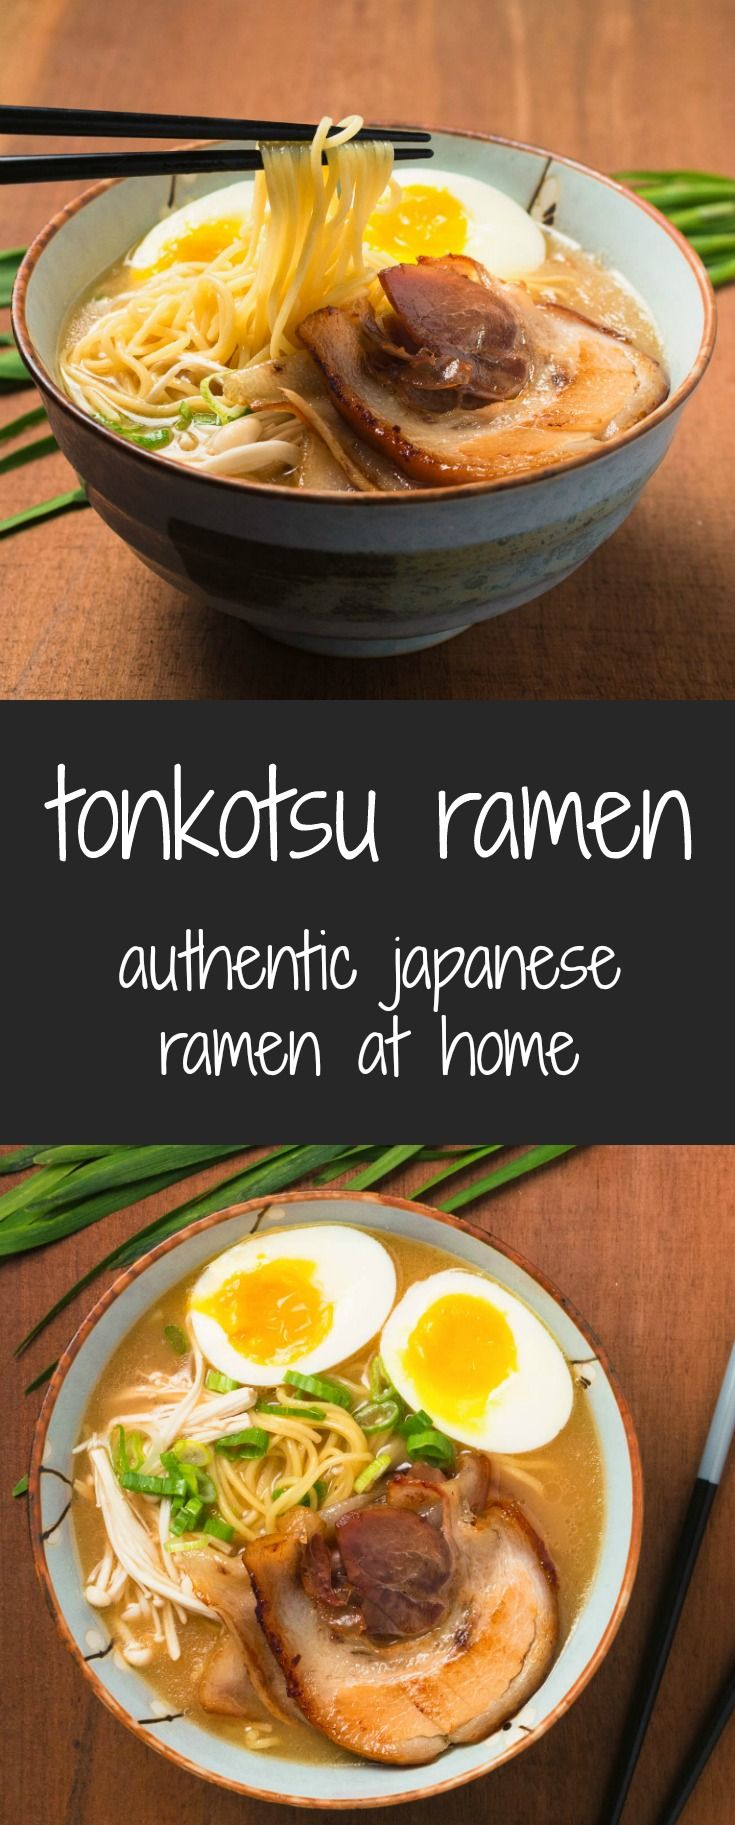 You can make ramen as good as your local ramen joint. Making tonkotsu ramen at home is truly a labour of love. This isn't some 15 minute miracle insta-ramen recipe. This isn't even some one day recipe. Making authentic tonkotsu ramen takes time. It takes effort. You have to be a bit crazy to go there. But it's so good. It's totally worth it.